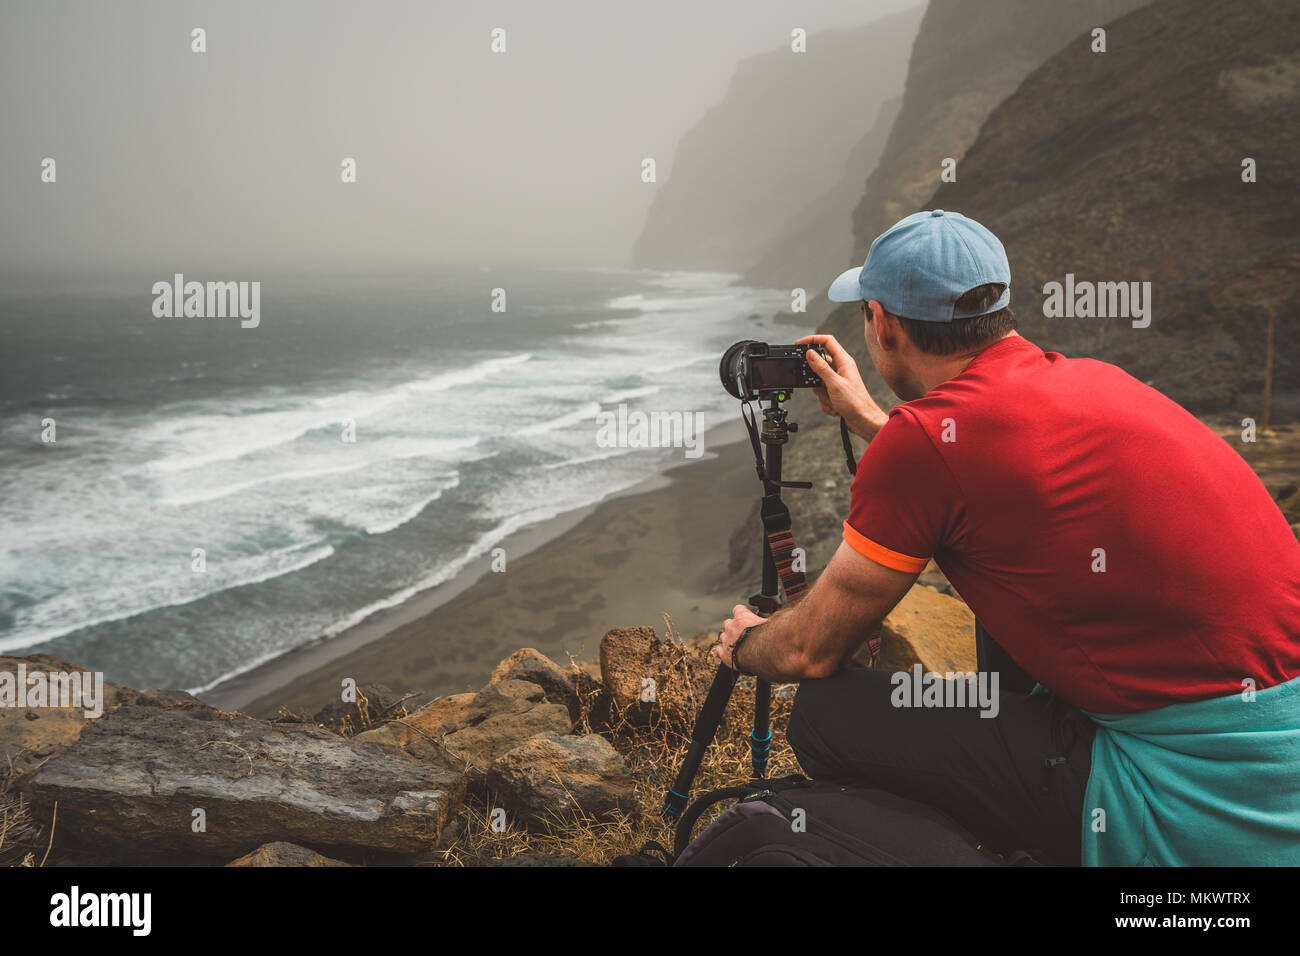 Tourist making photograph of cliff coastline with ocean waves from Cruzinha to Ponta do Sol. Huge mountains on the trekking path. Santo Antao Island, Cape Verde - Stock Image